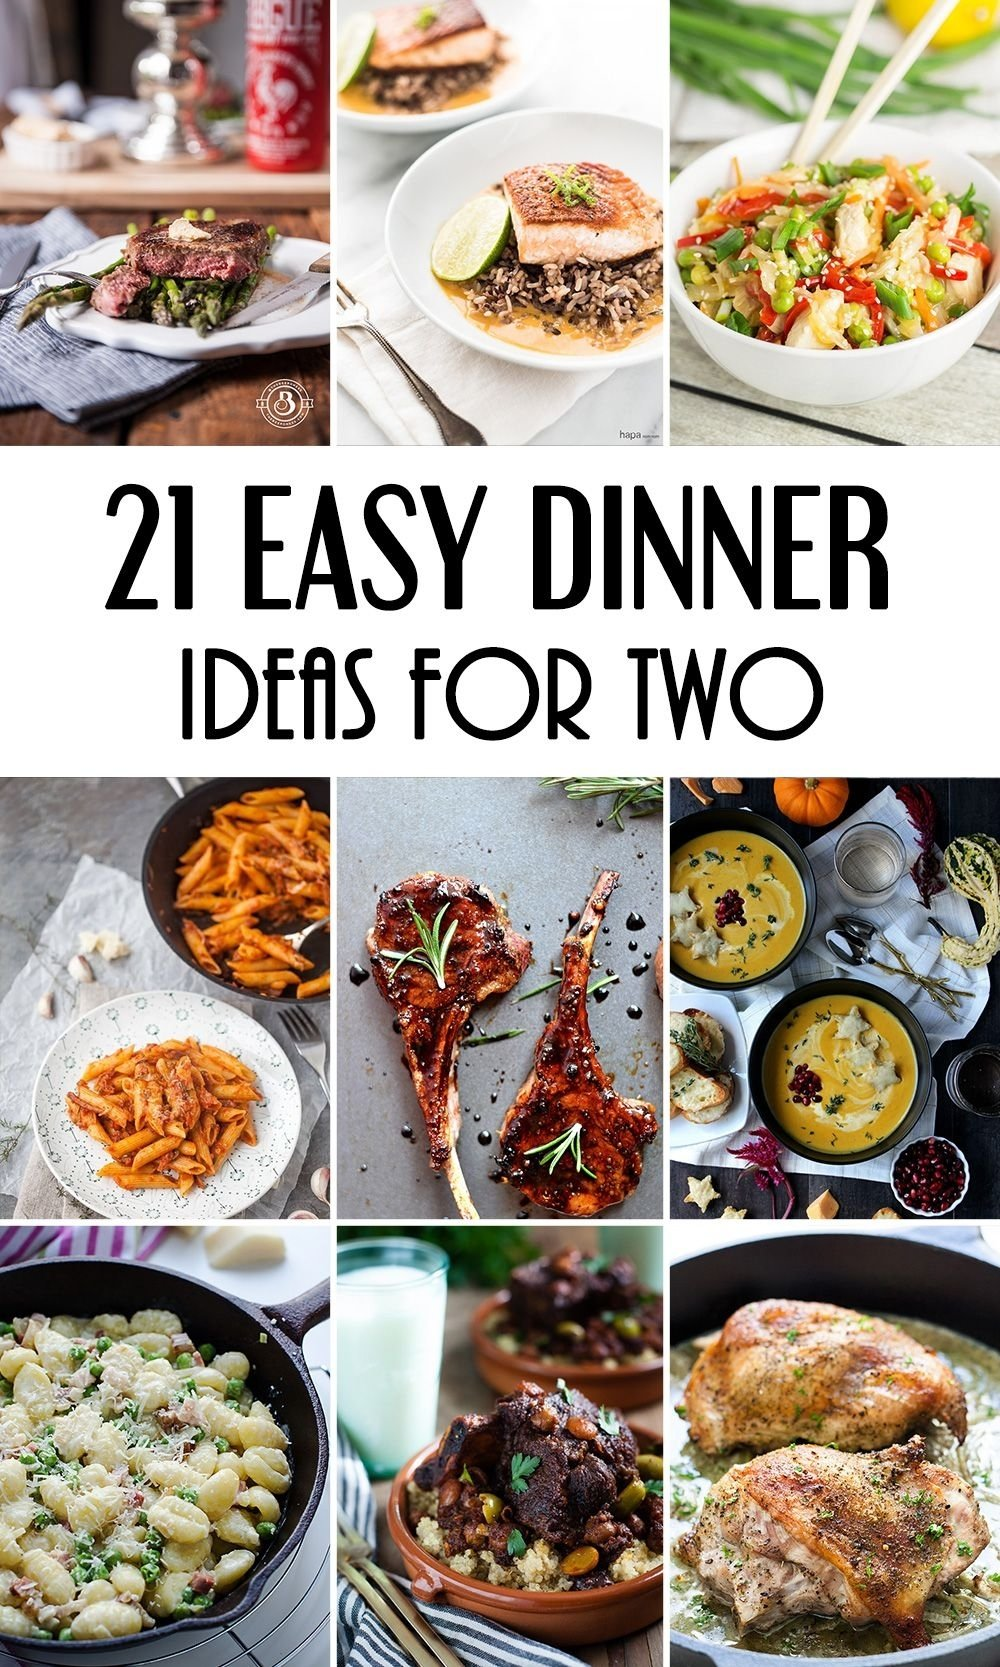 10 Gorgeous Easy Supper Ideas For Two 21 easy dinner ideas for two that will impress your loved one 28 2020